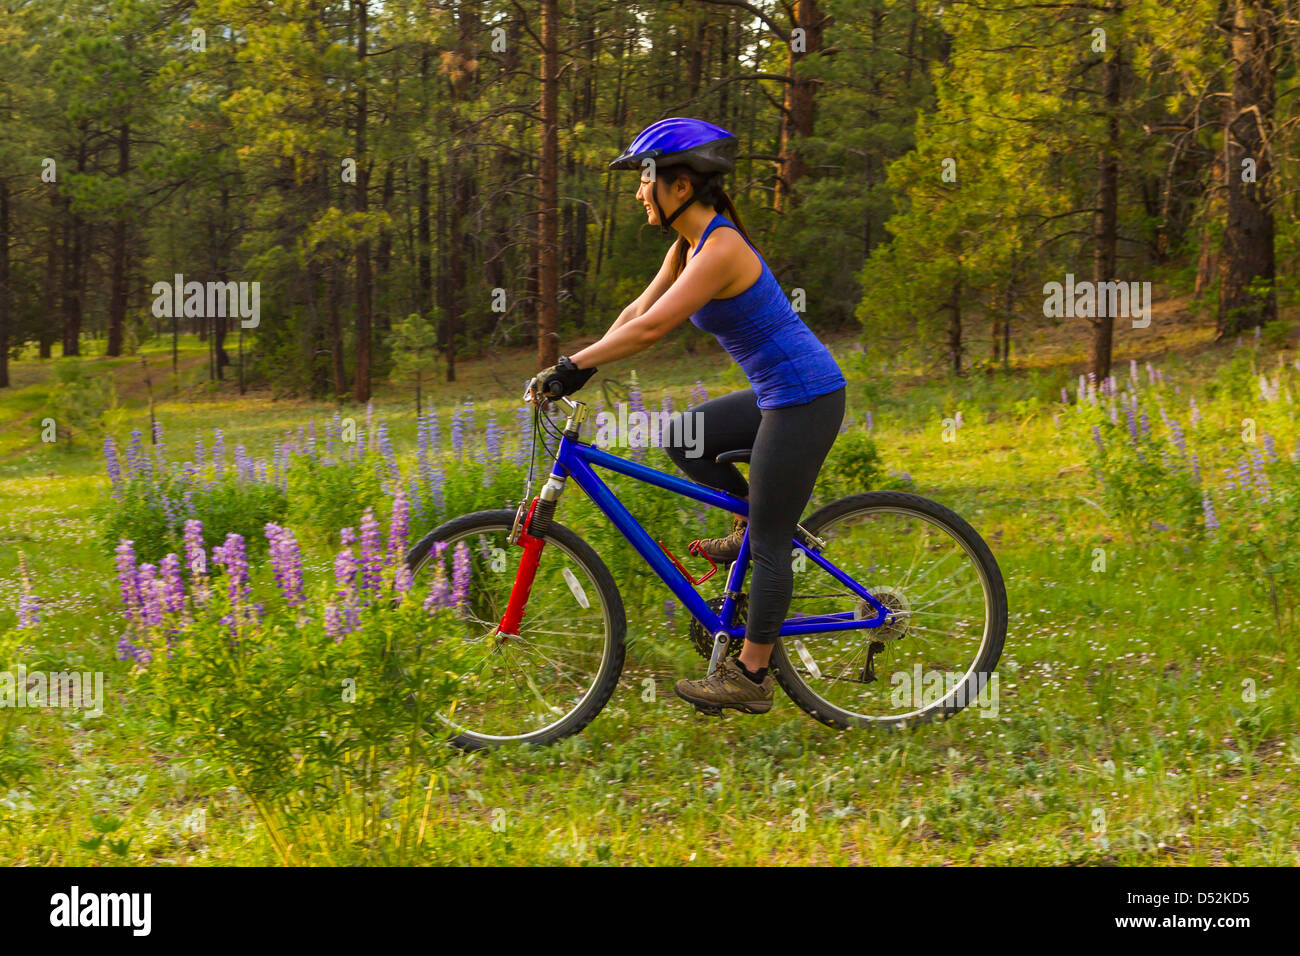 Chinese woman riding mountain bike in meadow Banque D'Images